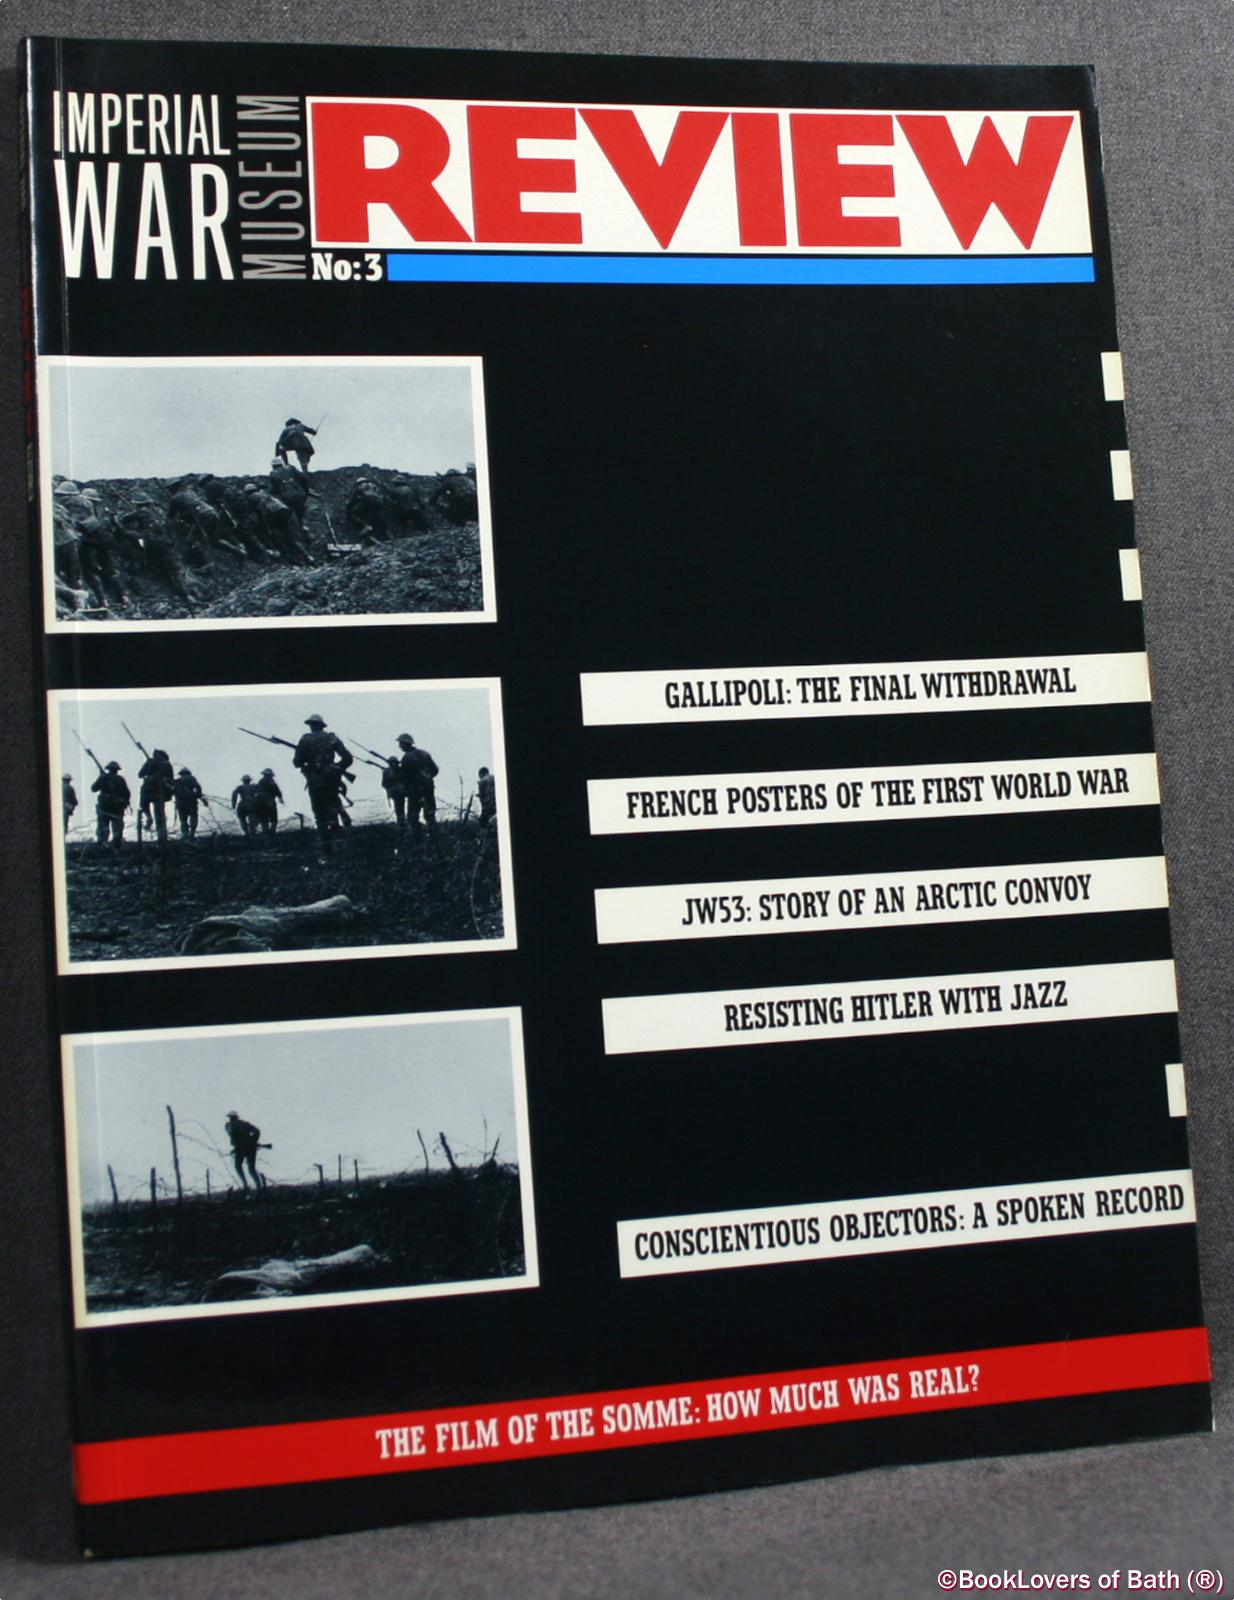 Imperial War Museum Review: Articles On Aspects of Twentieth Century History Principally by the Staff of the Imperial War Museum: No. 3 - Edited by Suzanne Bardgett